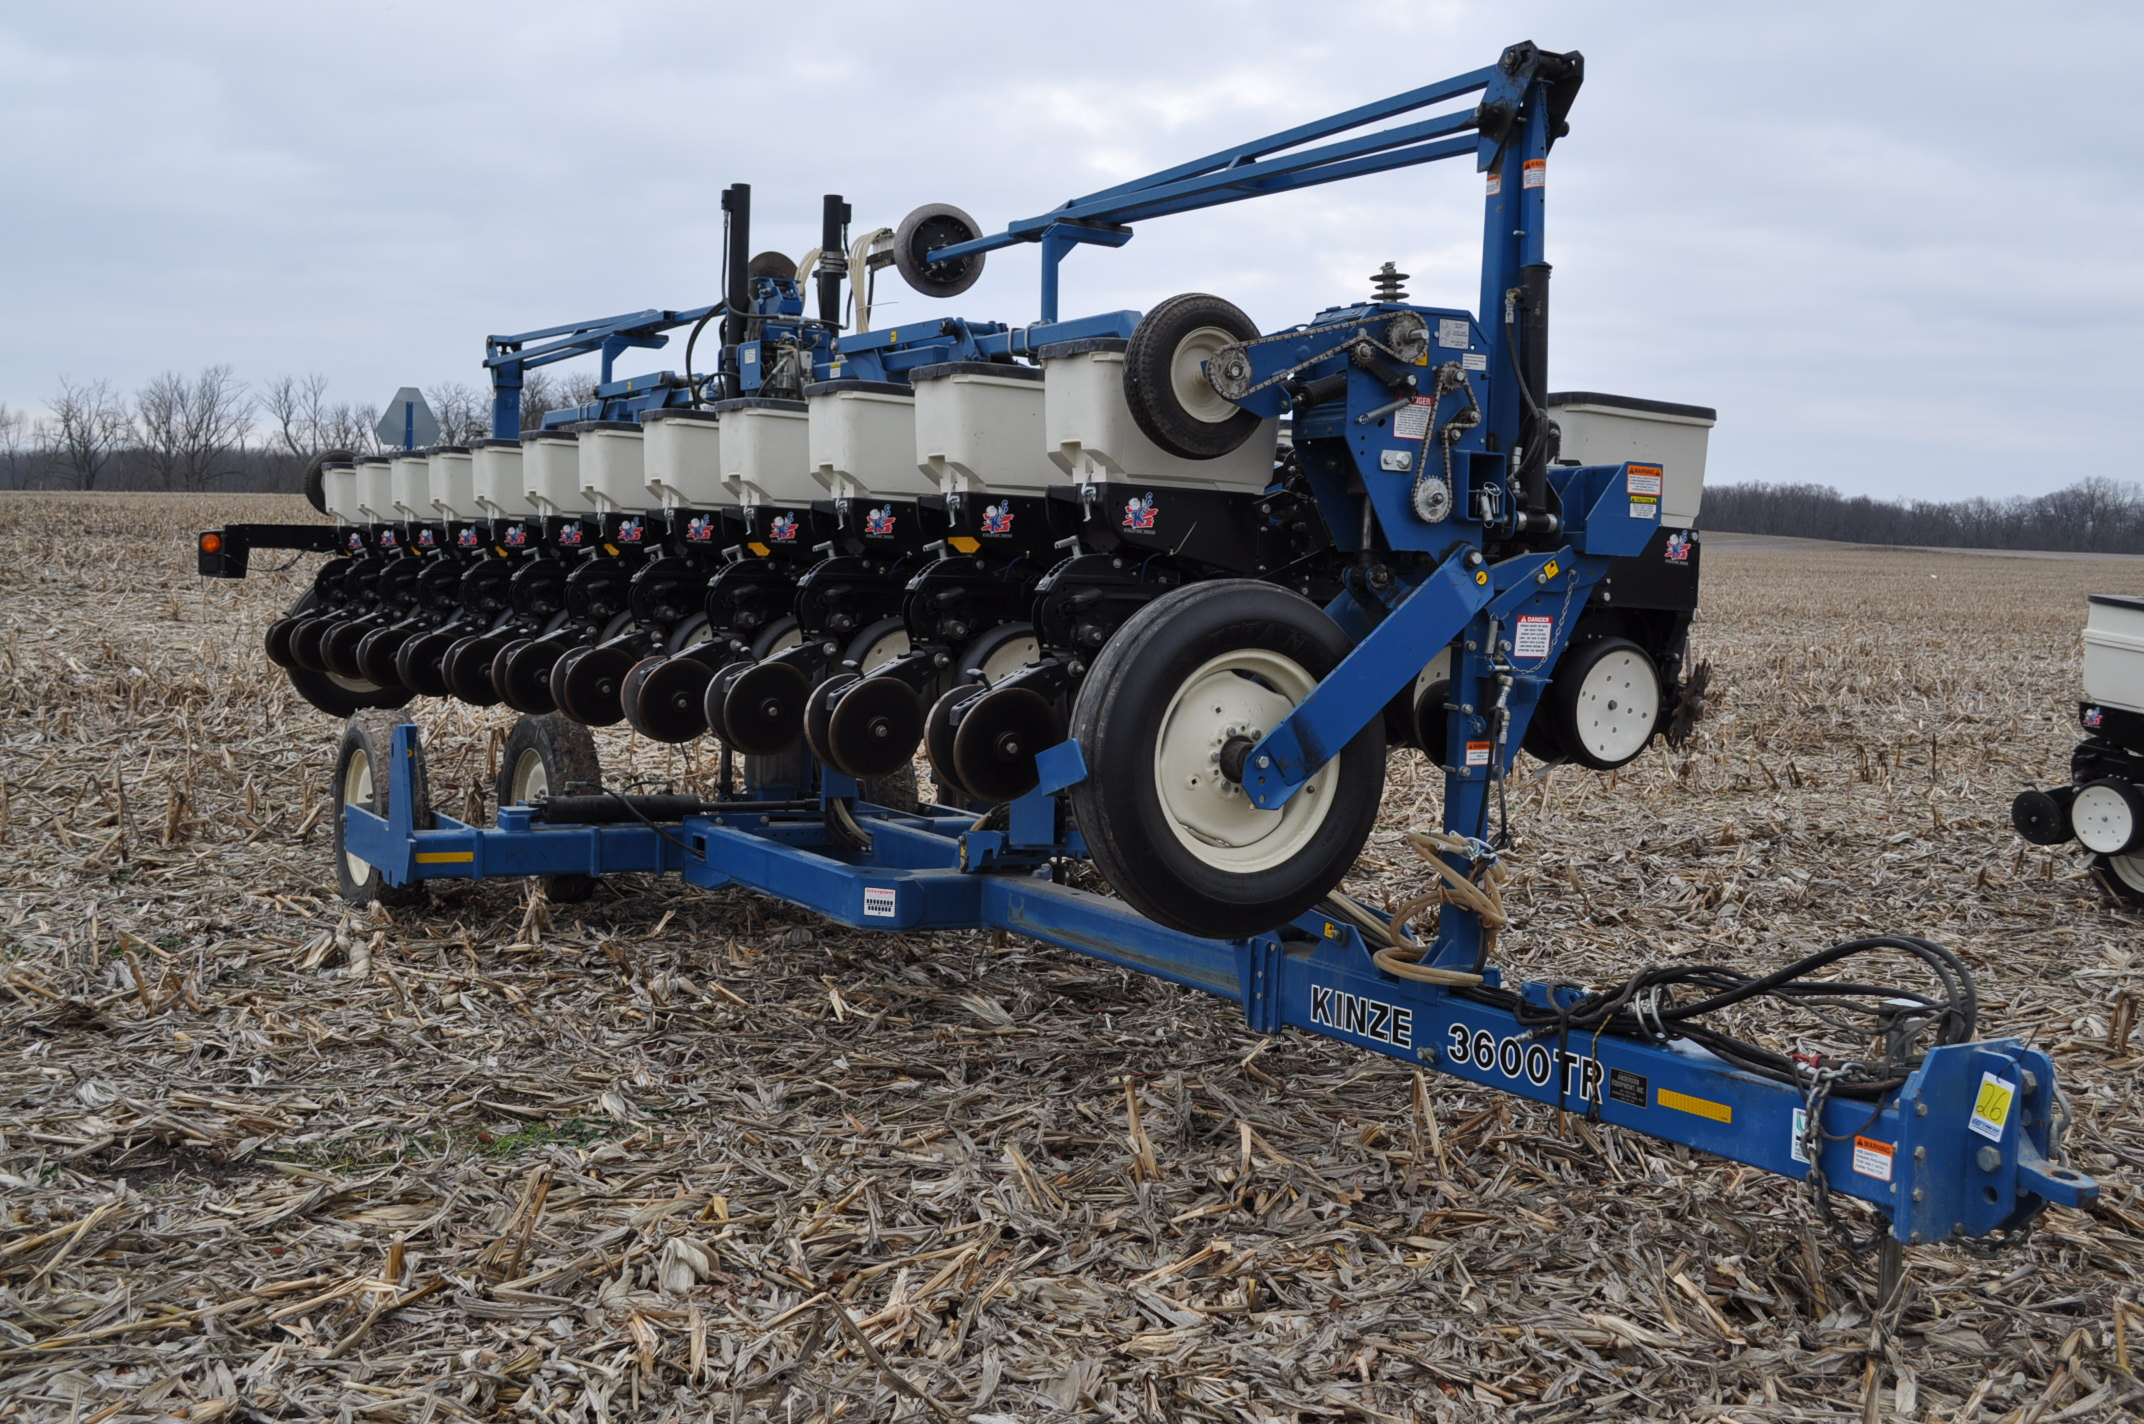 Kinze 3600TR planter, 12/24 twin row, Martin row cleaners, markers, finger pick up, cast closing - Image 2 of 20